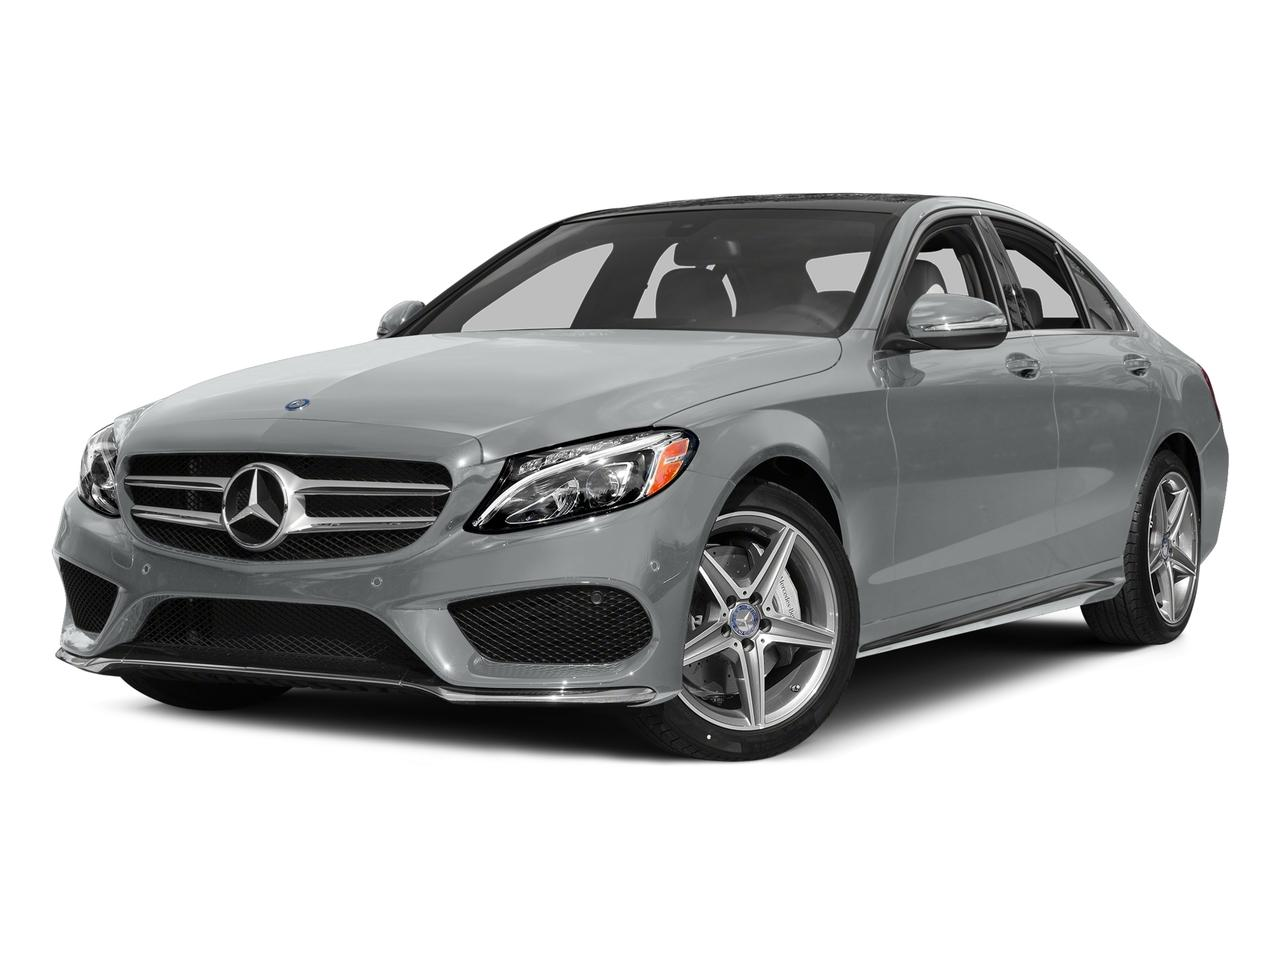 2015 Mercedes-Benz C-Class Vehicle Photo in State College, PA 16801